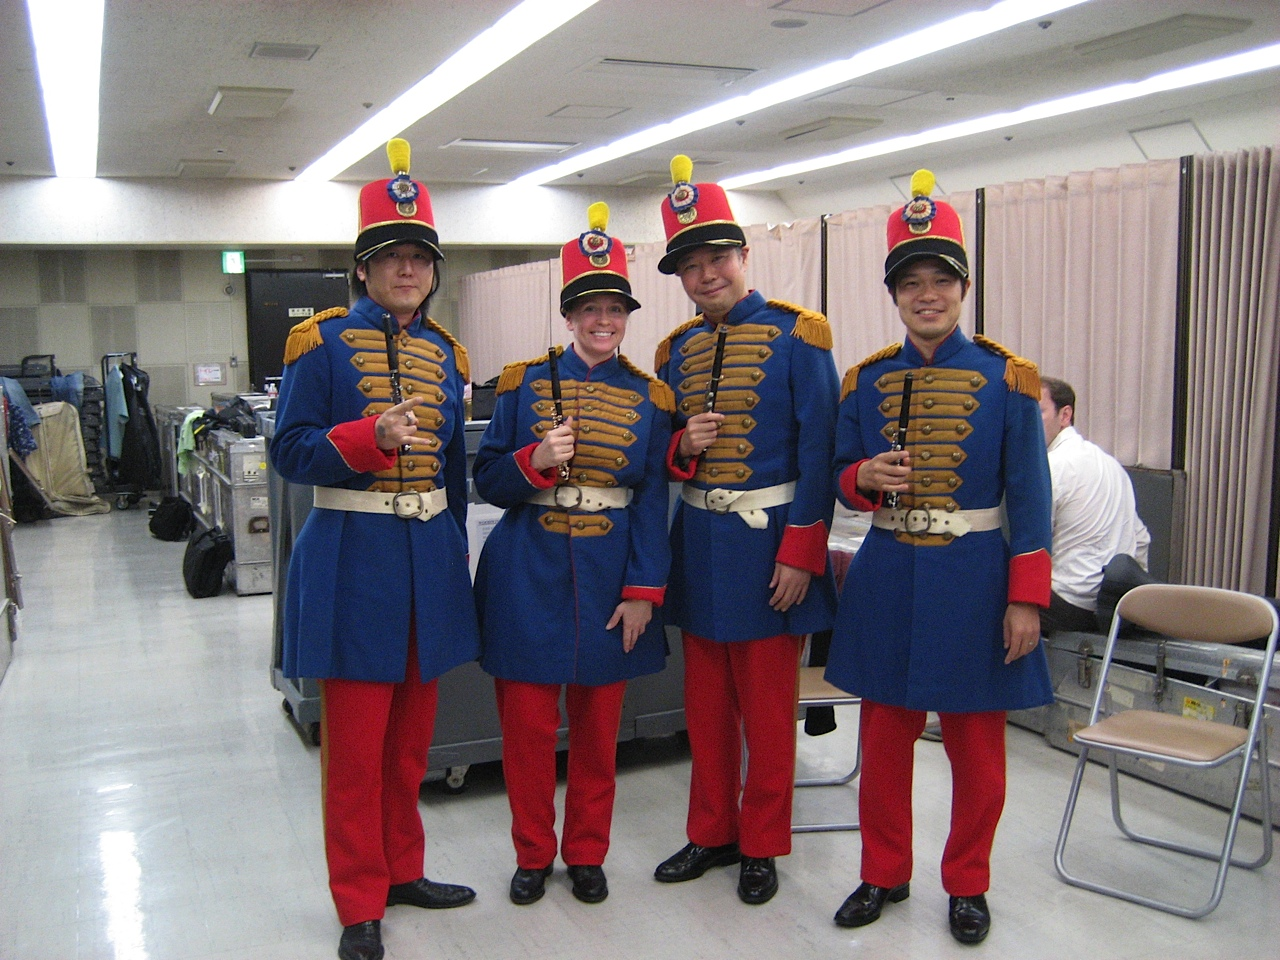 Stephanie poses with the piccolo section in Japan, 2011. These smiling piccoloists add marching in lockstep to the list of circumstantial variables affecting intonation.